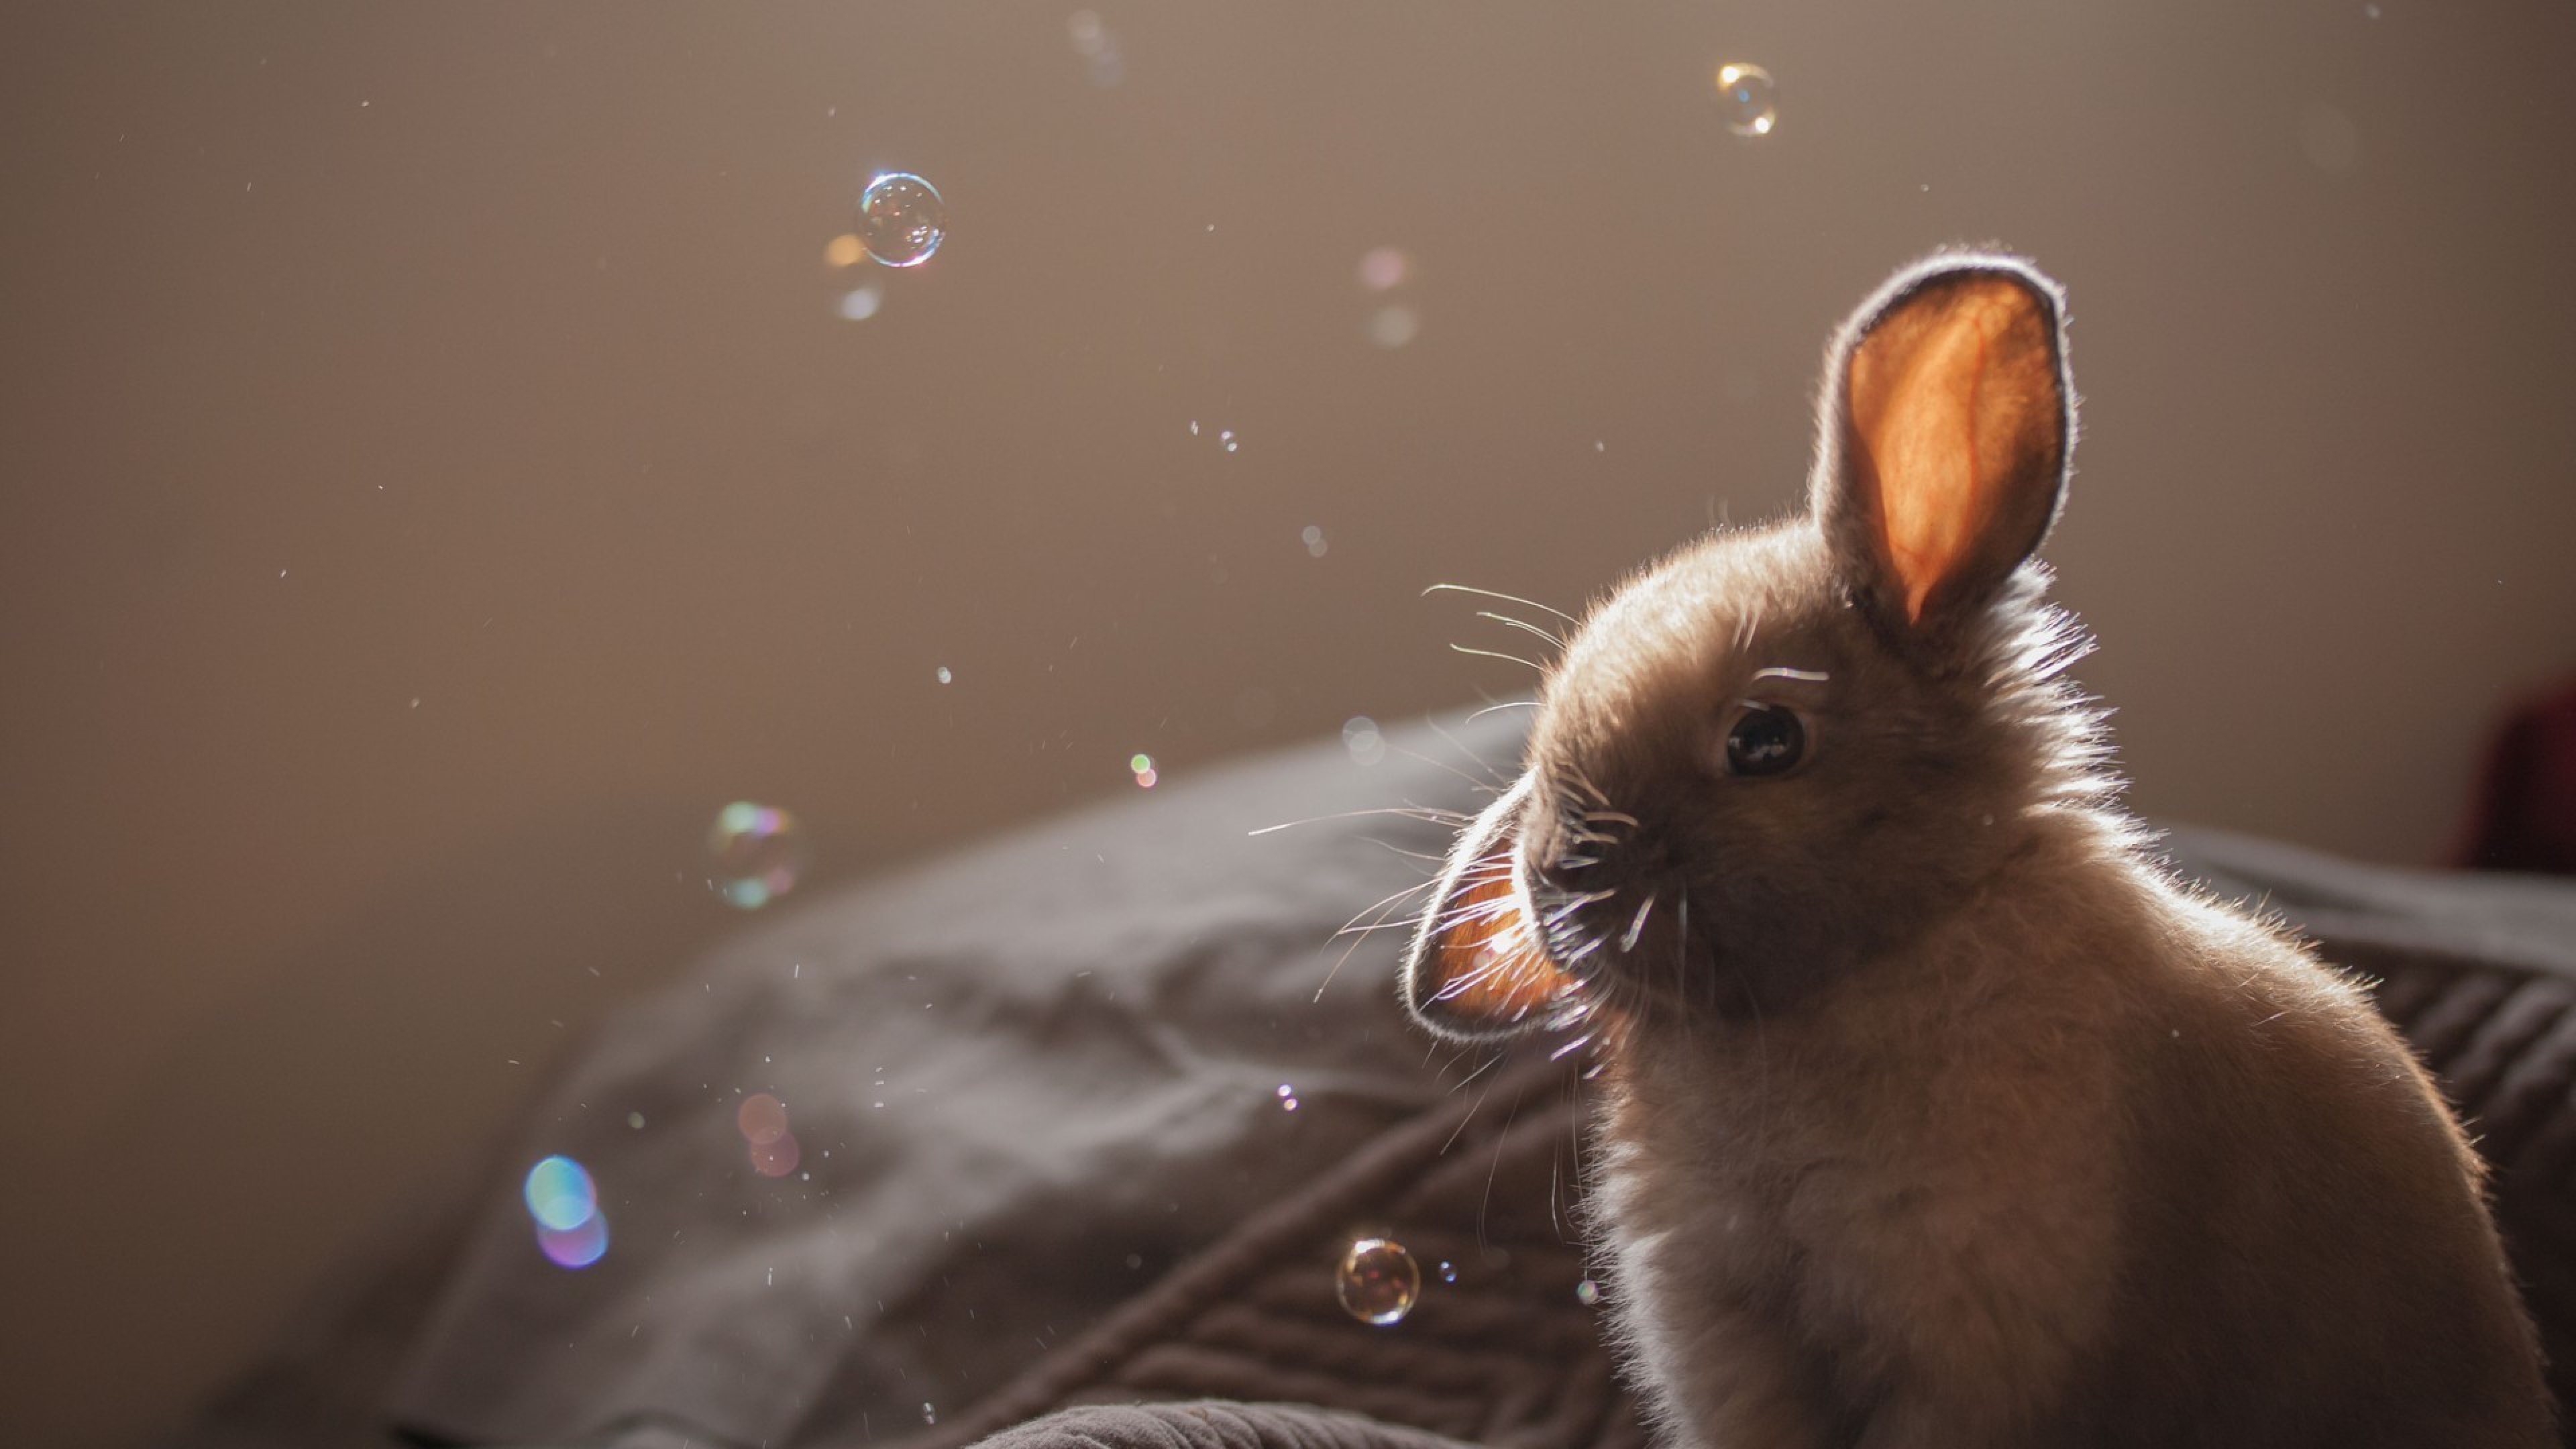 cute rabbit 2 4k 1542237747 - Cute Rabbit 2 4k - rabbit wallpapers 4k, cute wallpapers, animals wallpapers